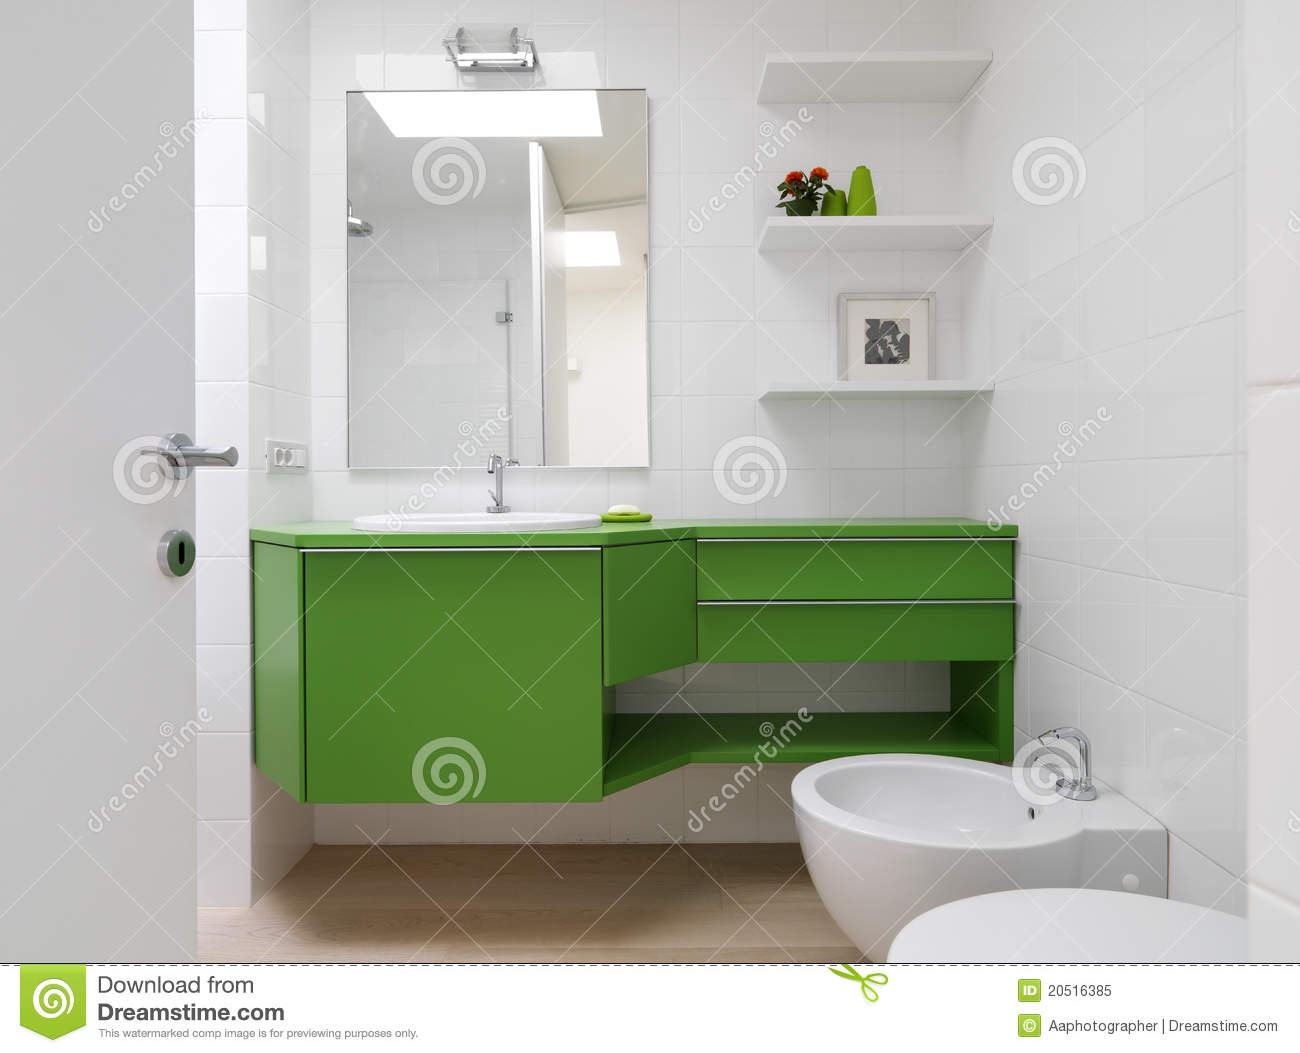 Modern Bathroom With Colorful Furniture Stock Image Image Of  # Muebles Para Toilet